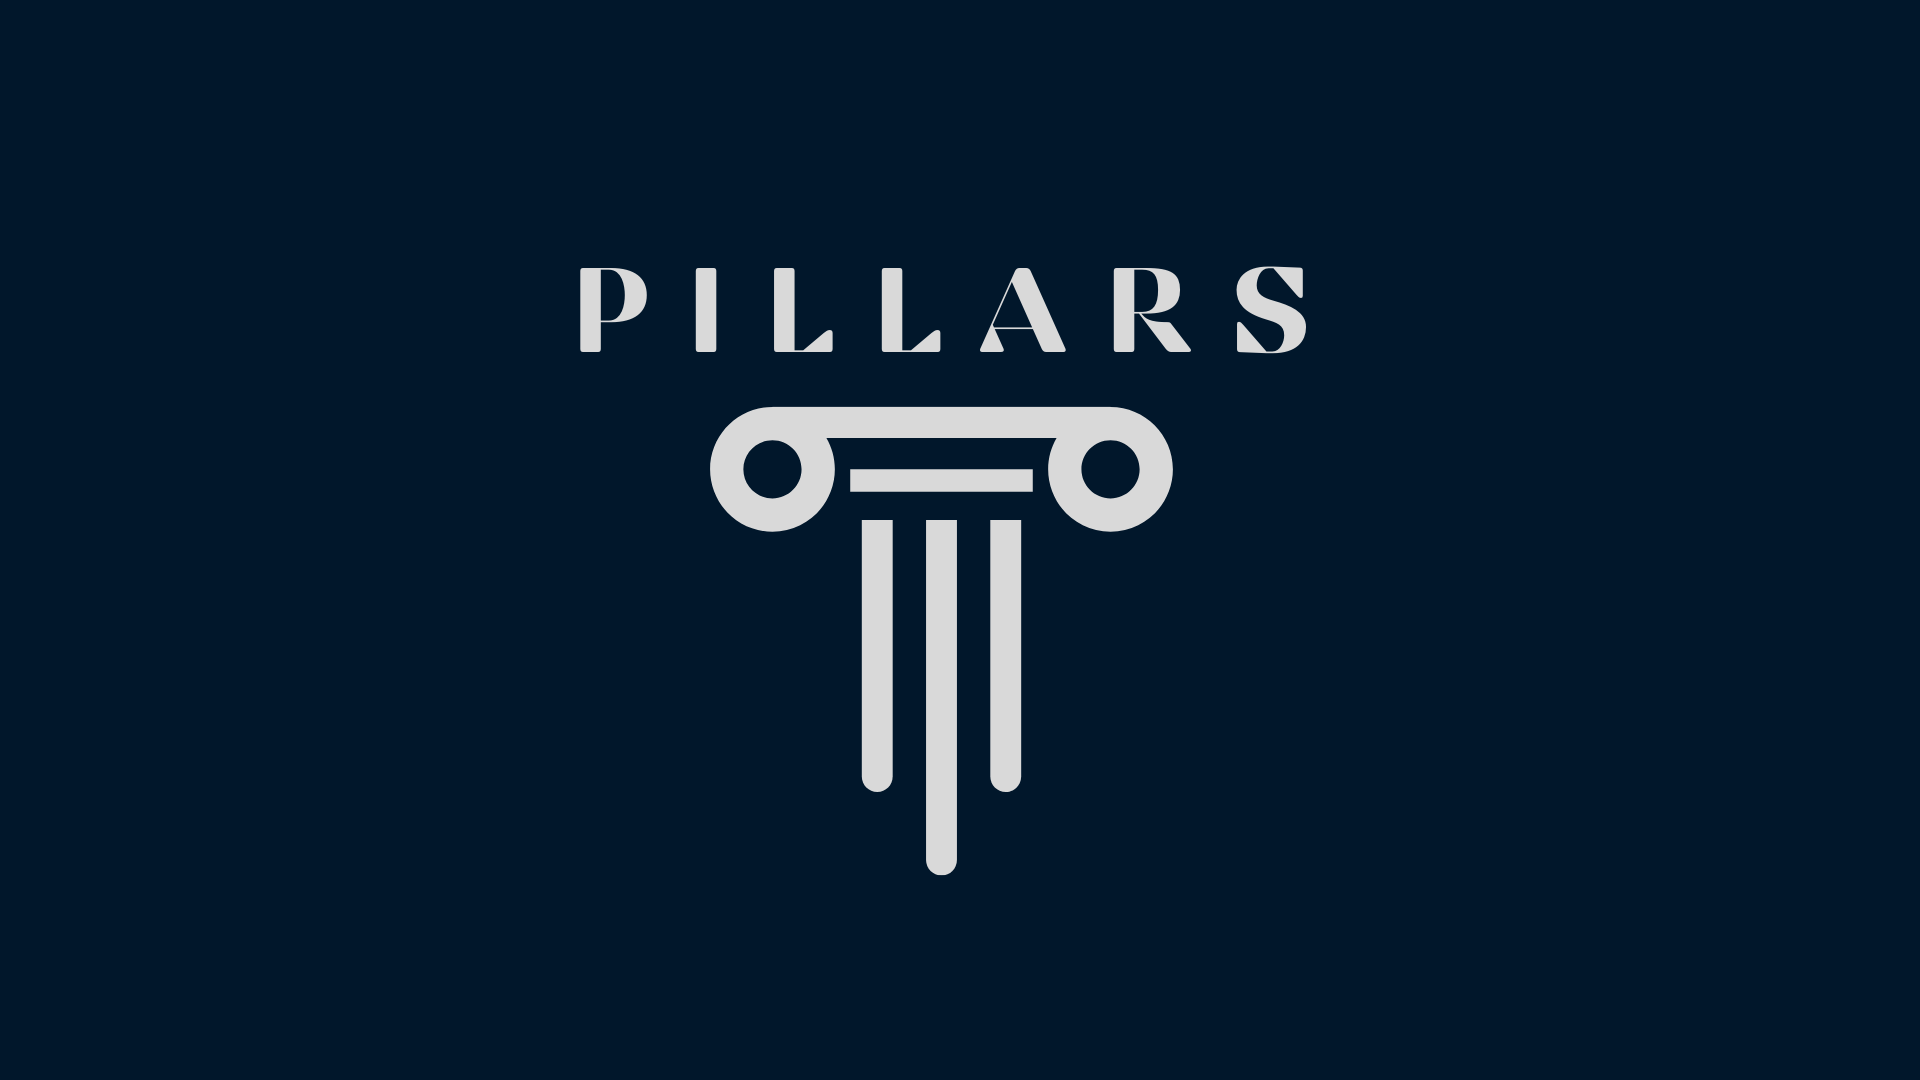 Pillars: God's Got This